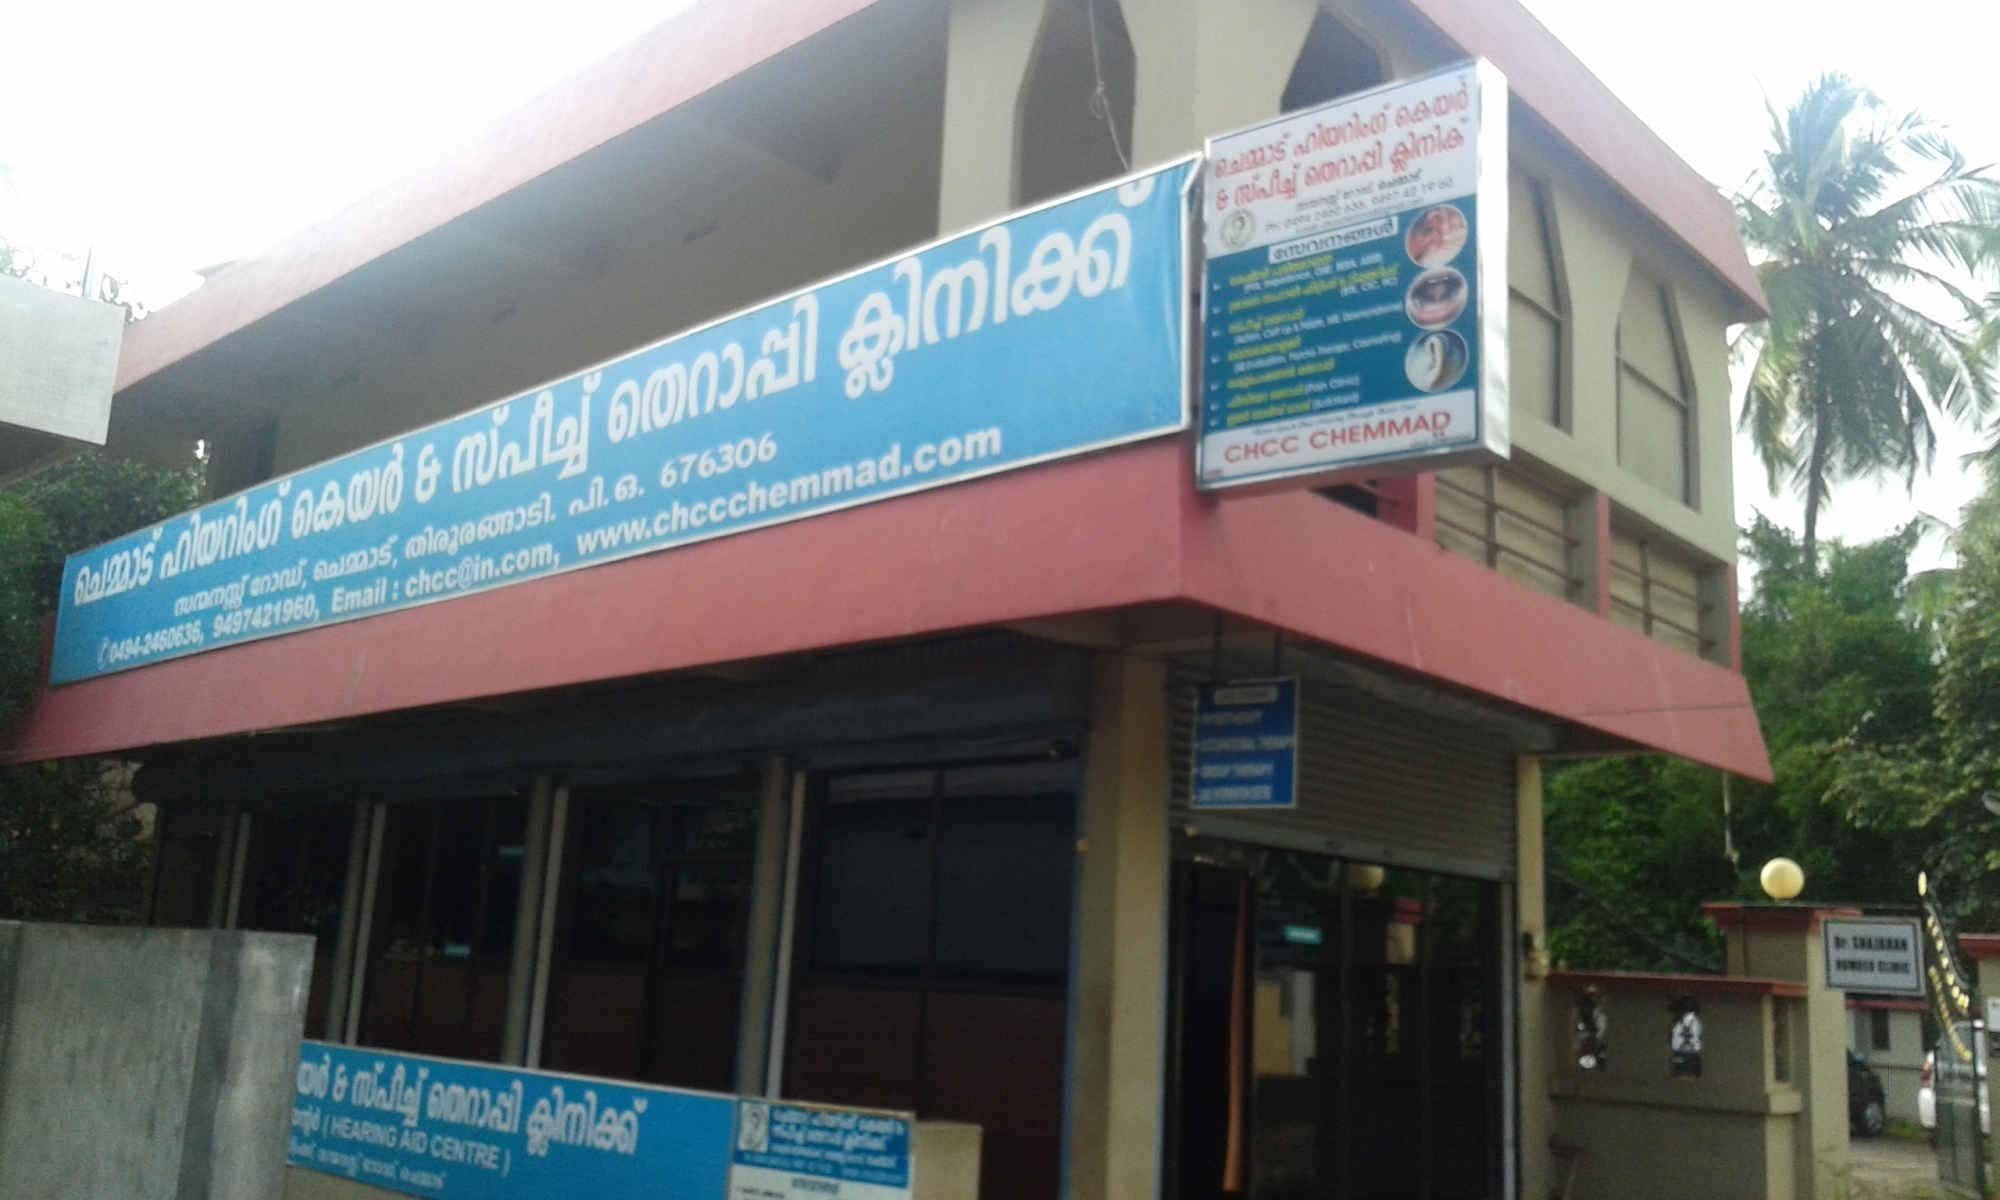 Top Iq Test Centres in Chemmad - Best Iq Test Centers Malappuram